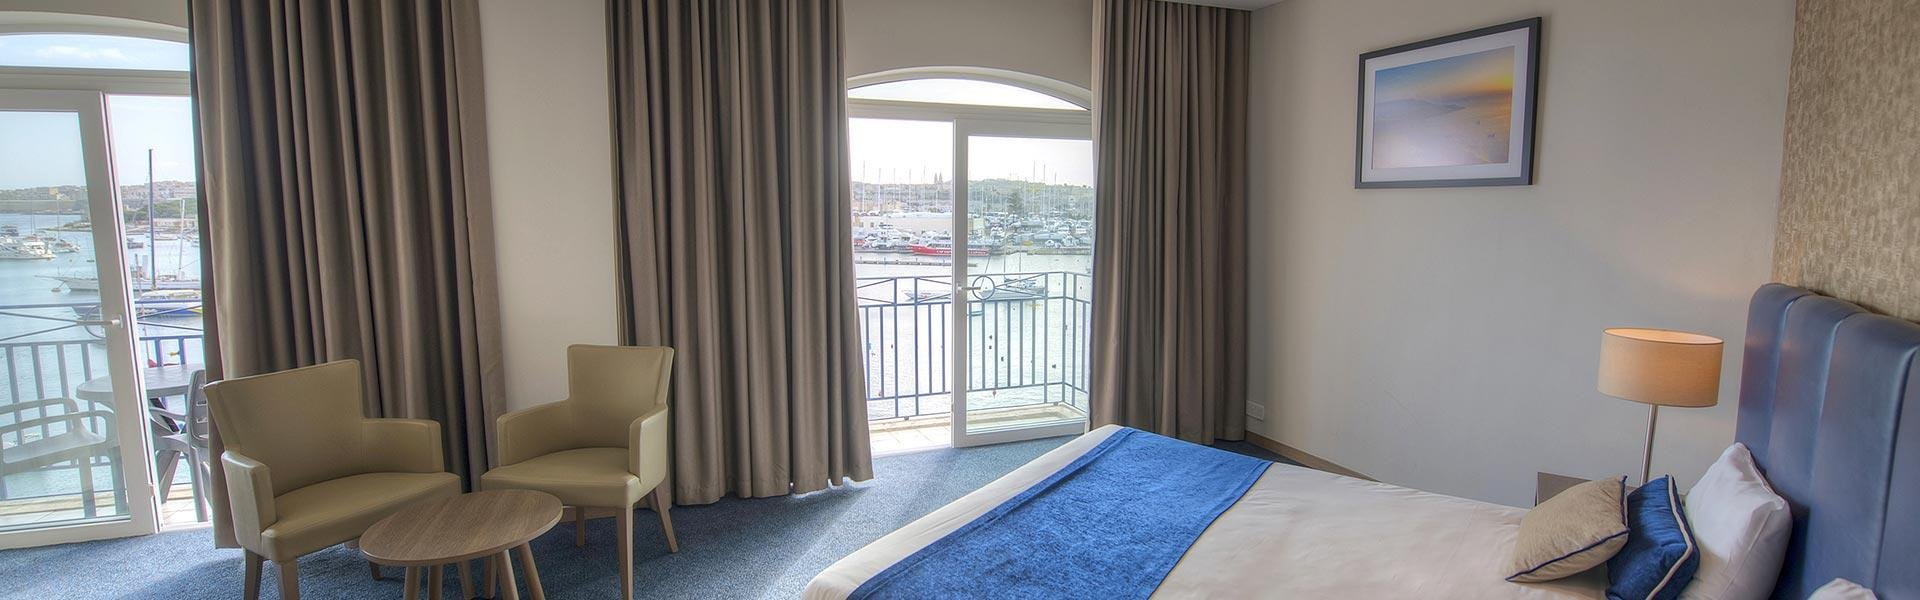 Superior Seaview Hotel Room